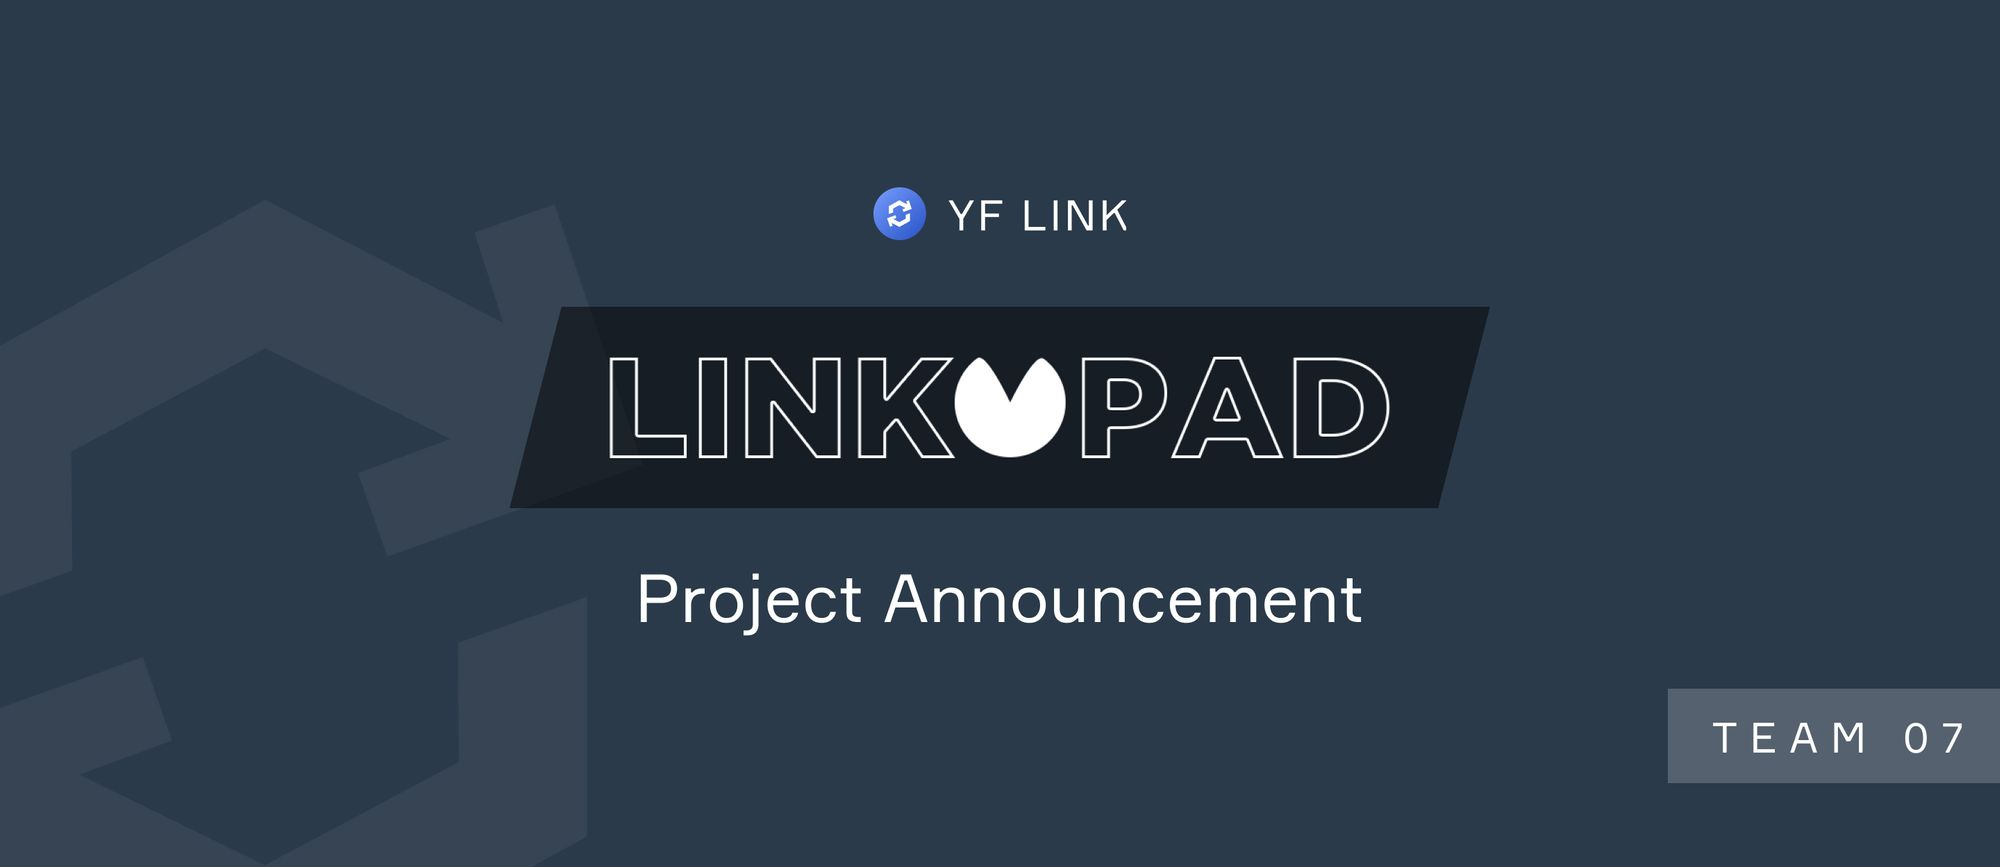 Project Announcement: LINKPAD